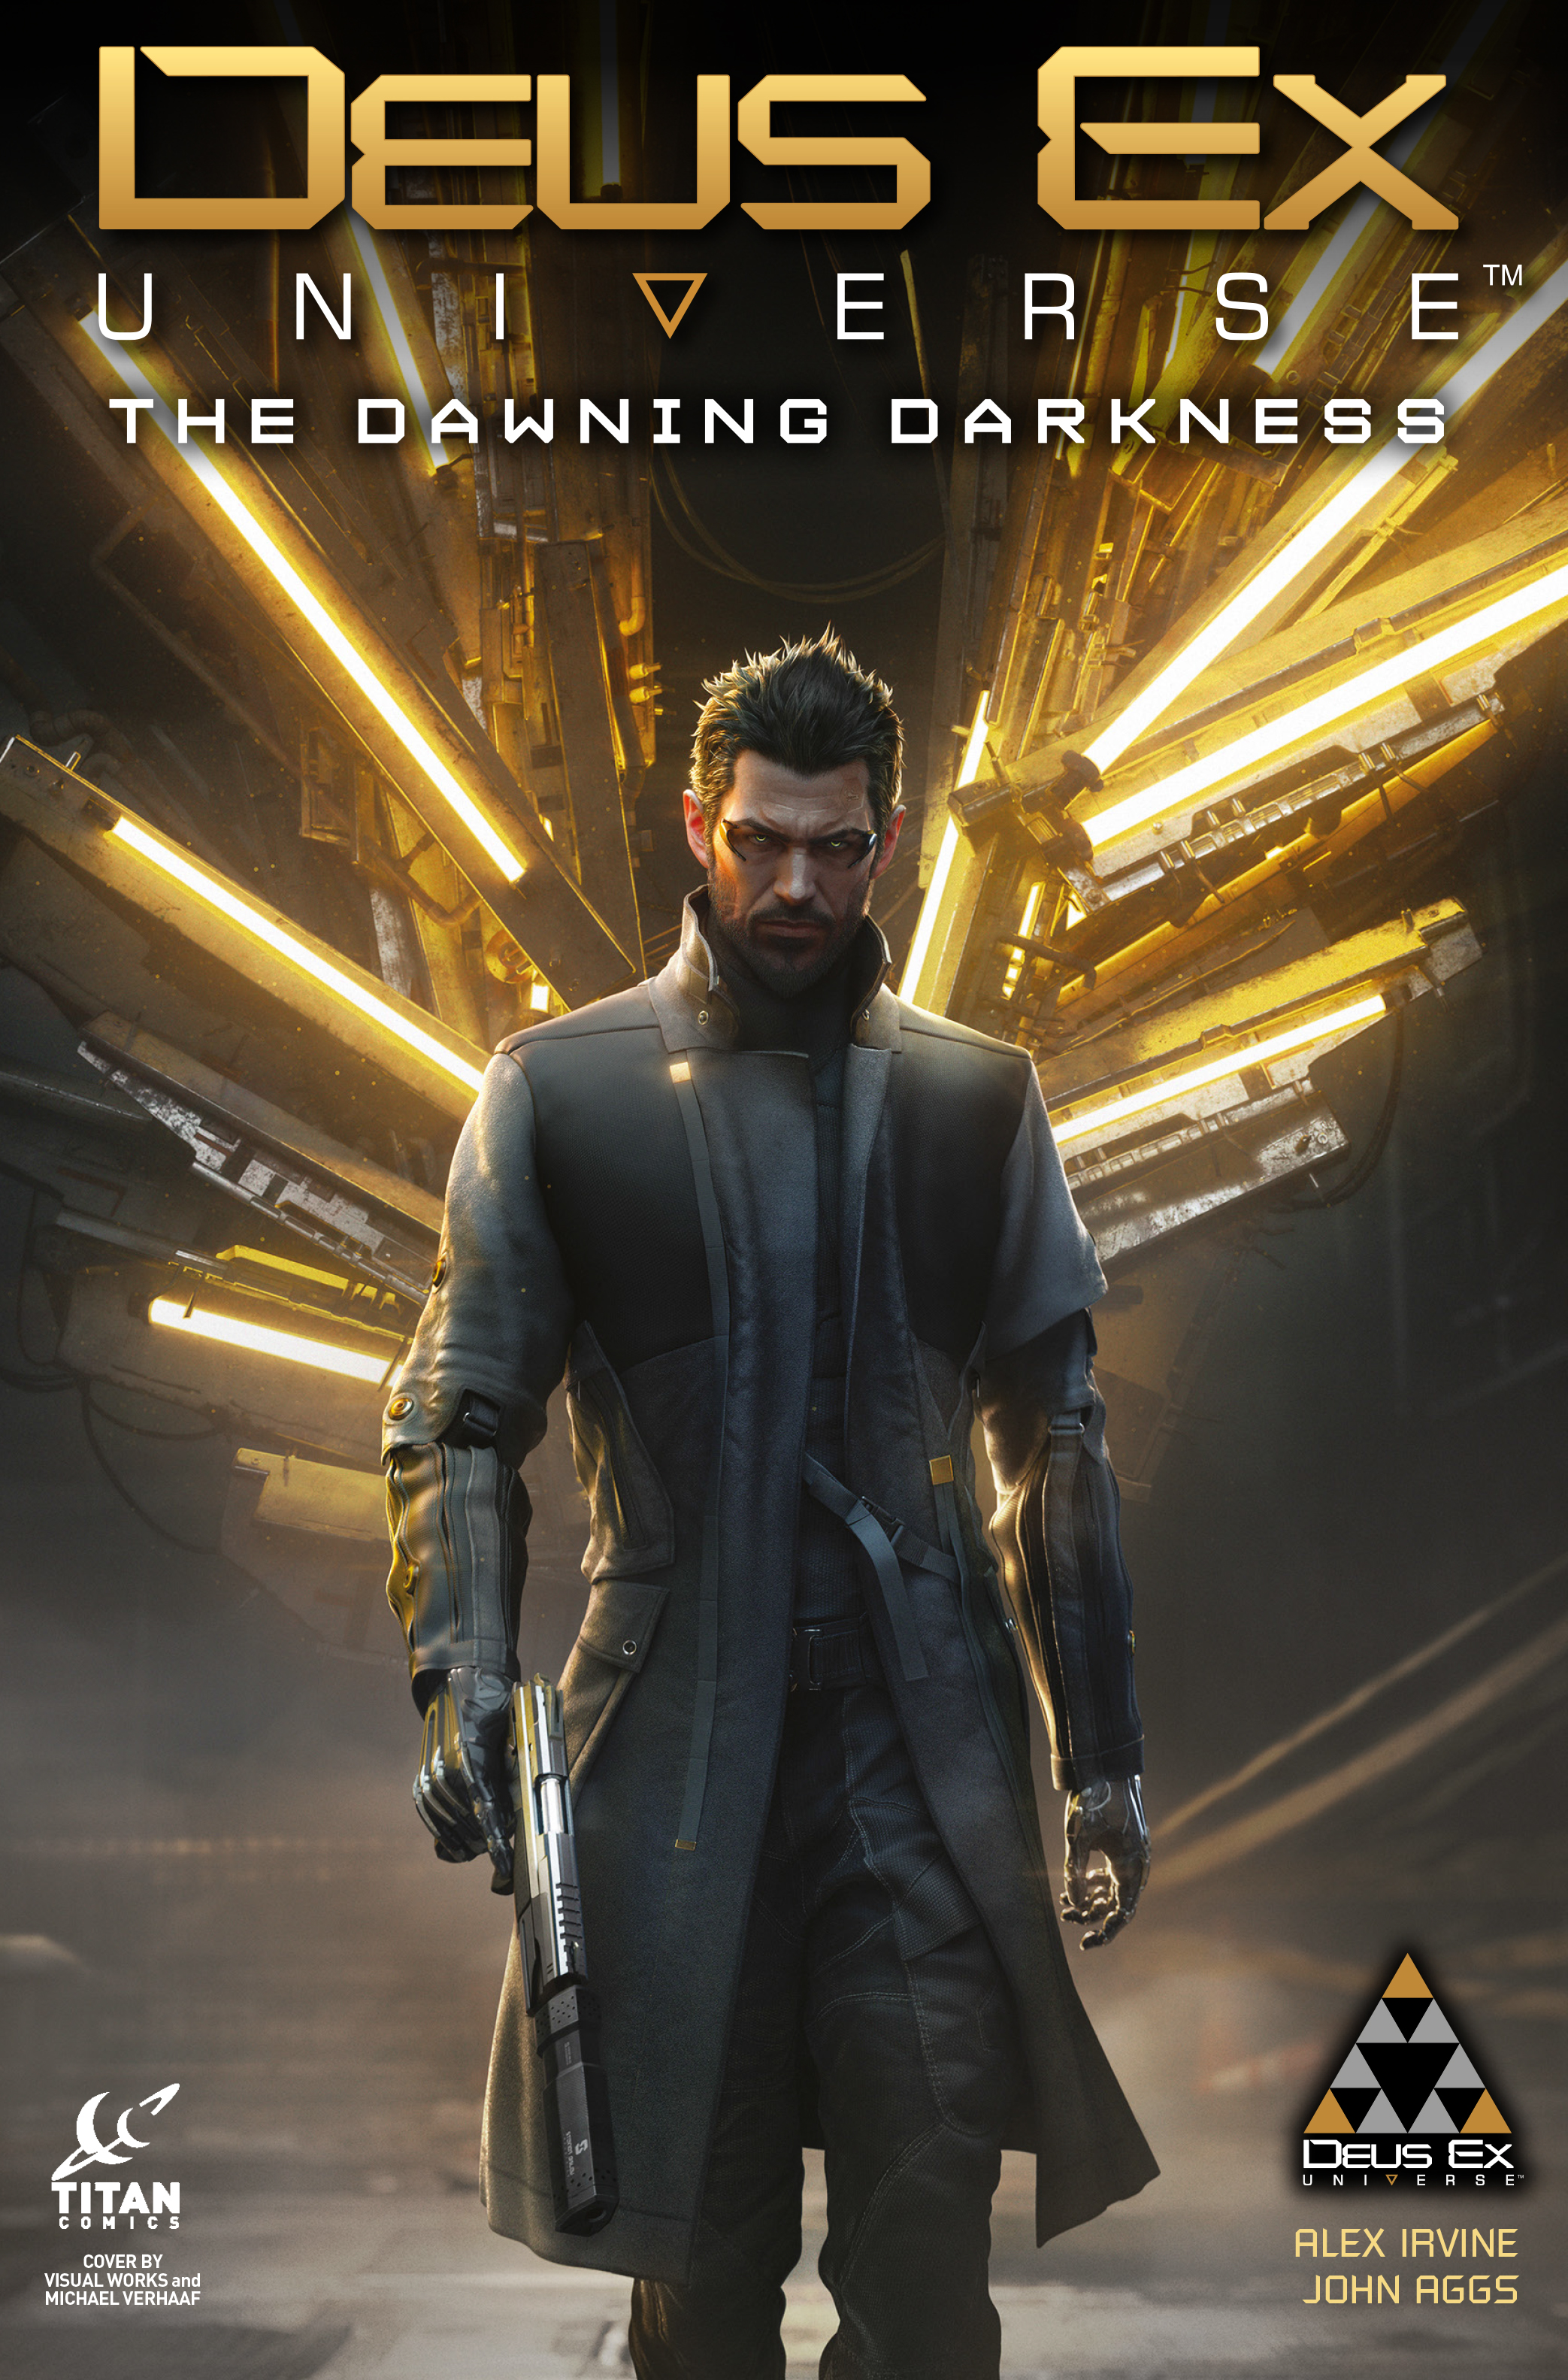 Deus Ex: The Dawning Darkness Full Page 1